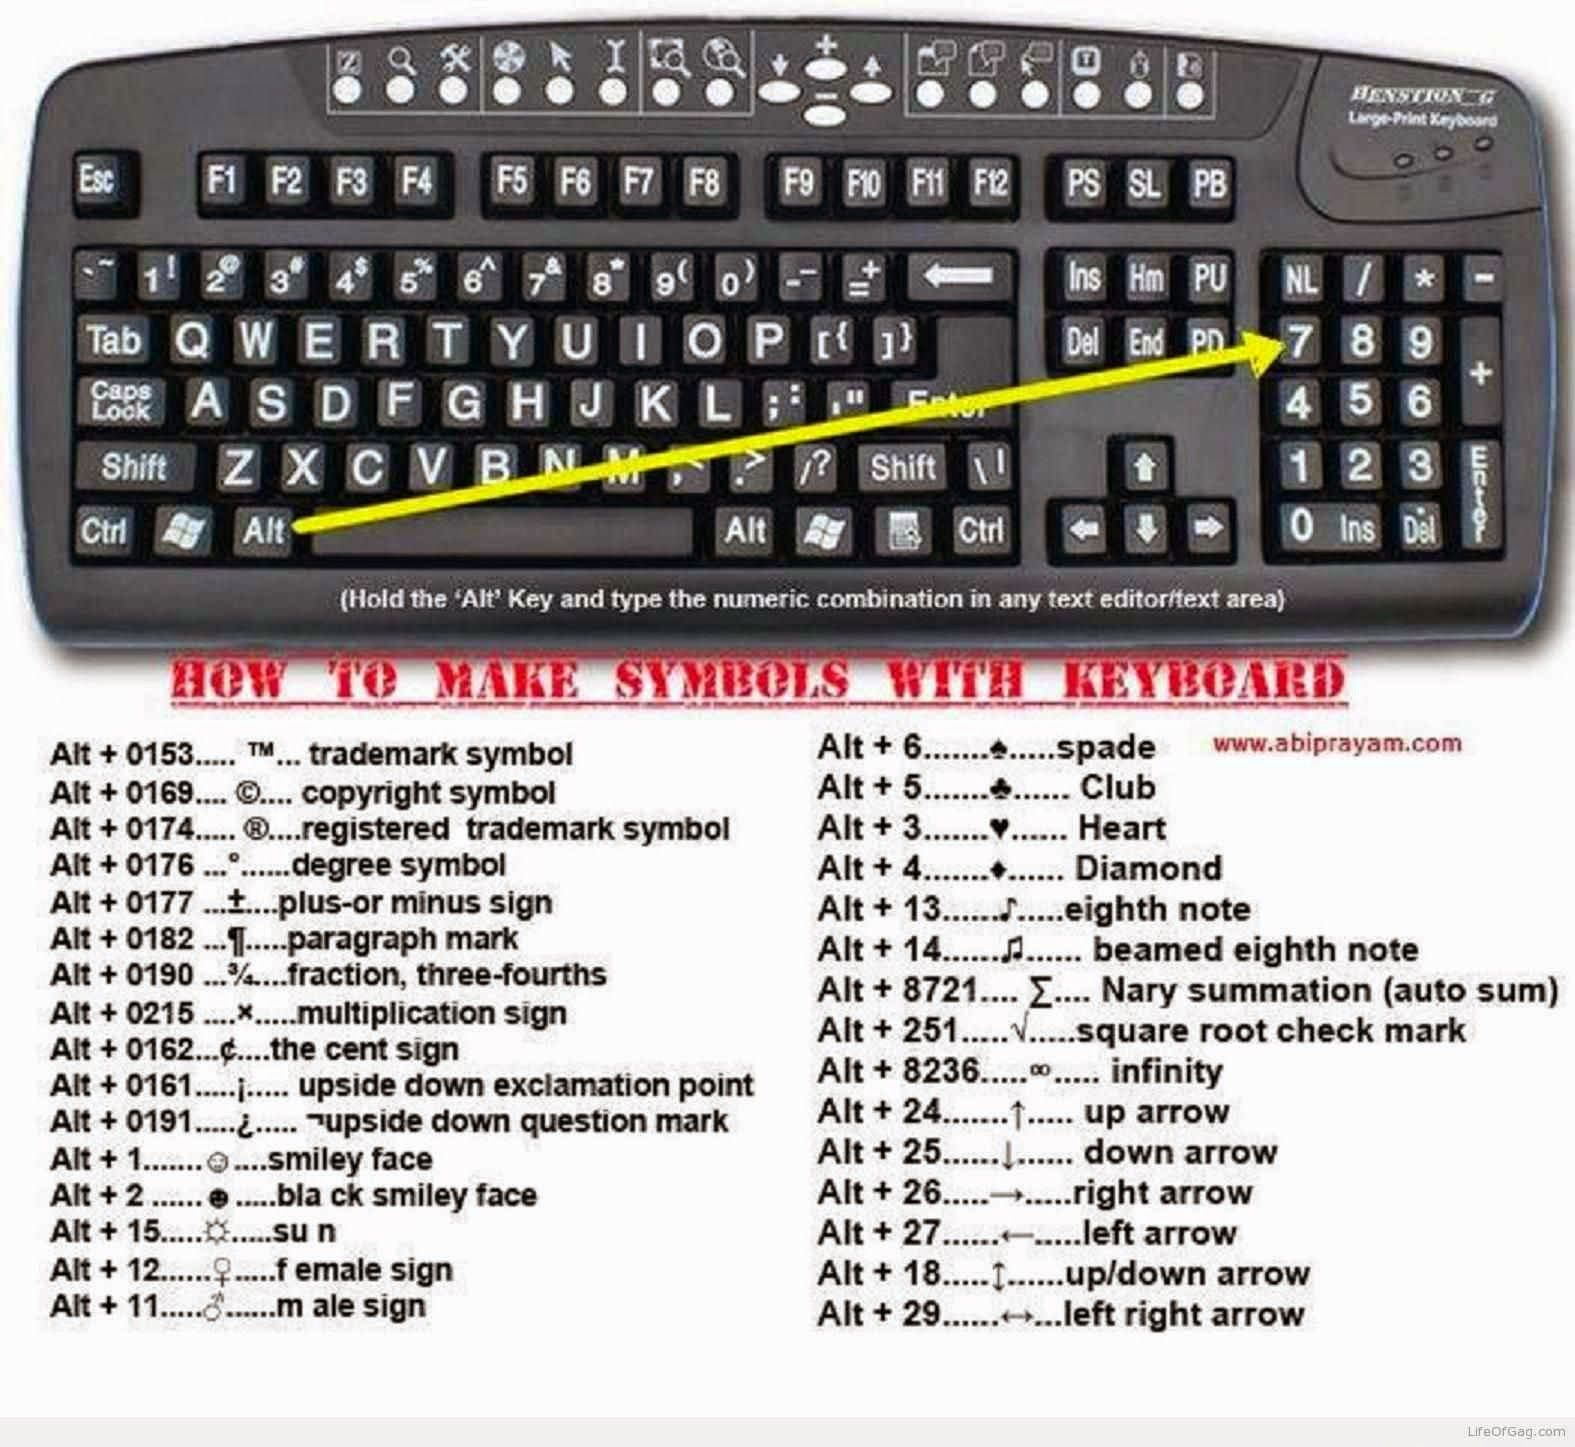 How to make symbols with keyboard electrical engineering world knowing keyboard shortcuts are really handy sometimes here is a list of common shortcuts for inputting symbols which symbol buycottarizona